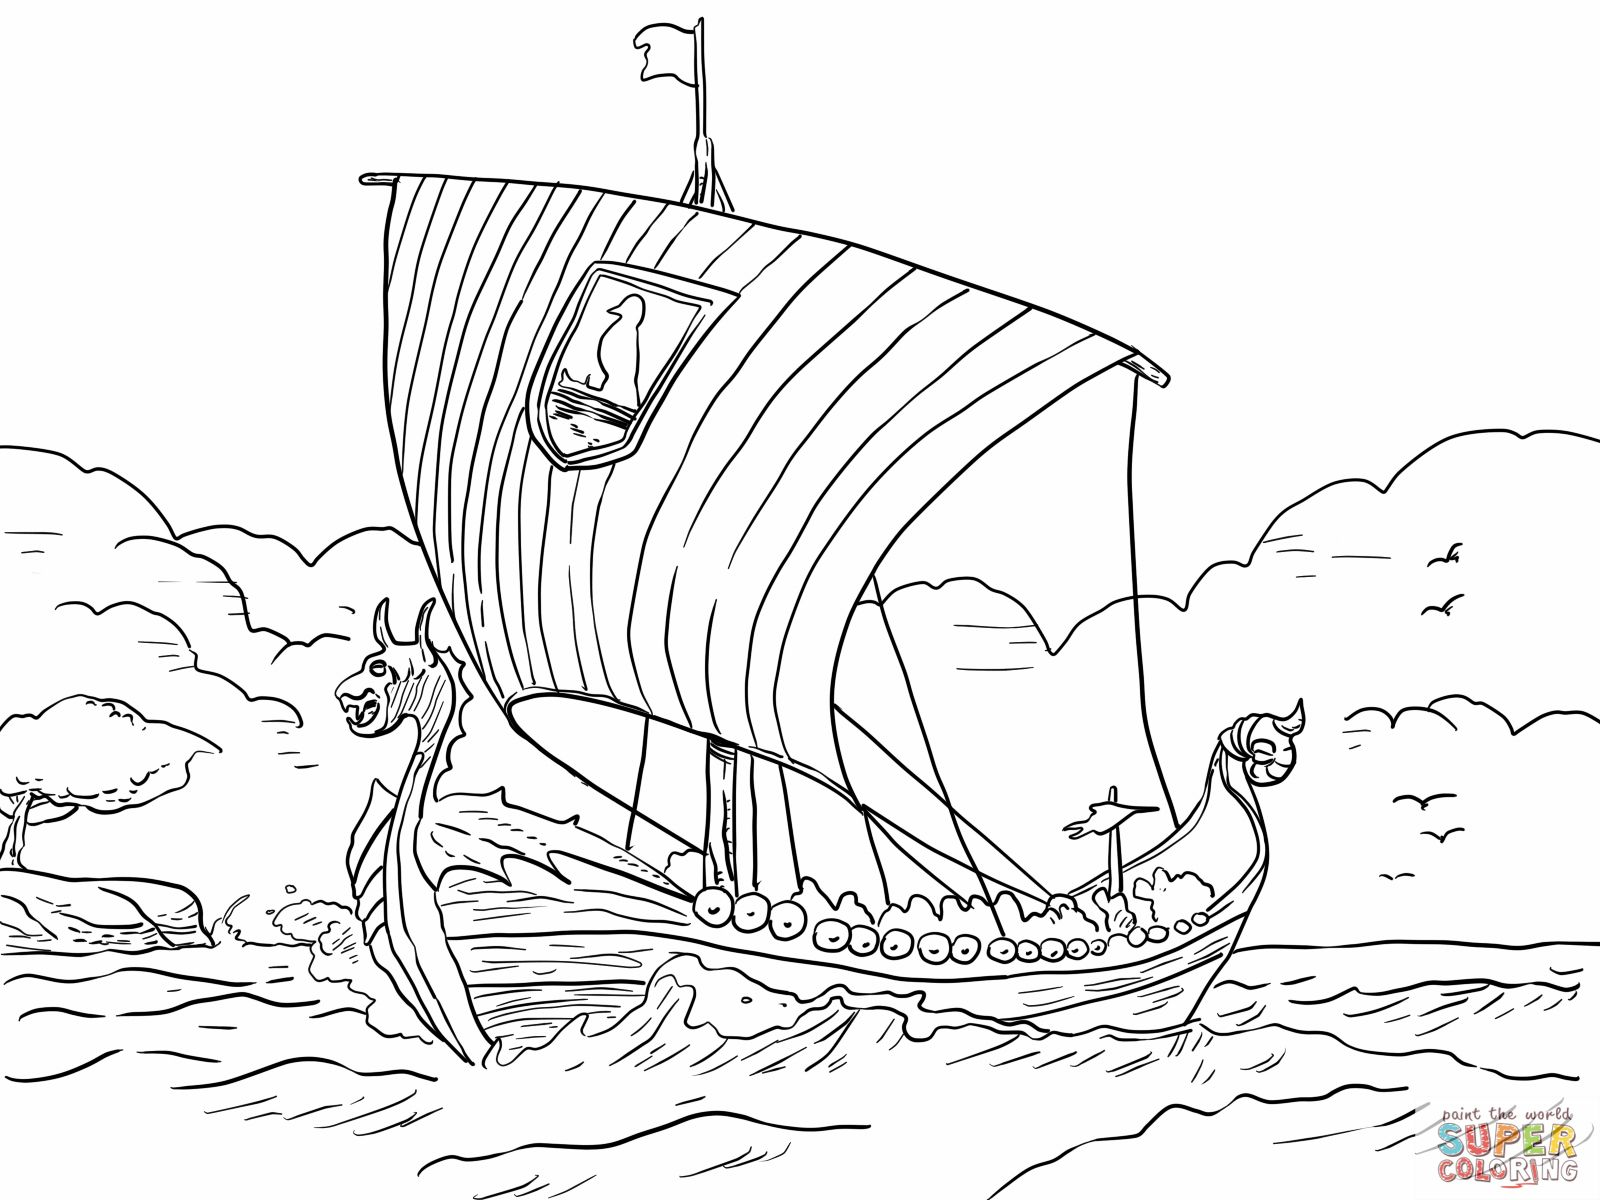 viking coloring pages vikings coloring pages | Longship Viking Sea Vessel Coloring  viking coloring pages